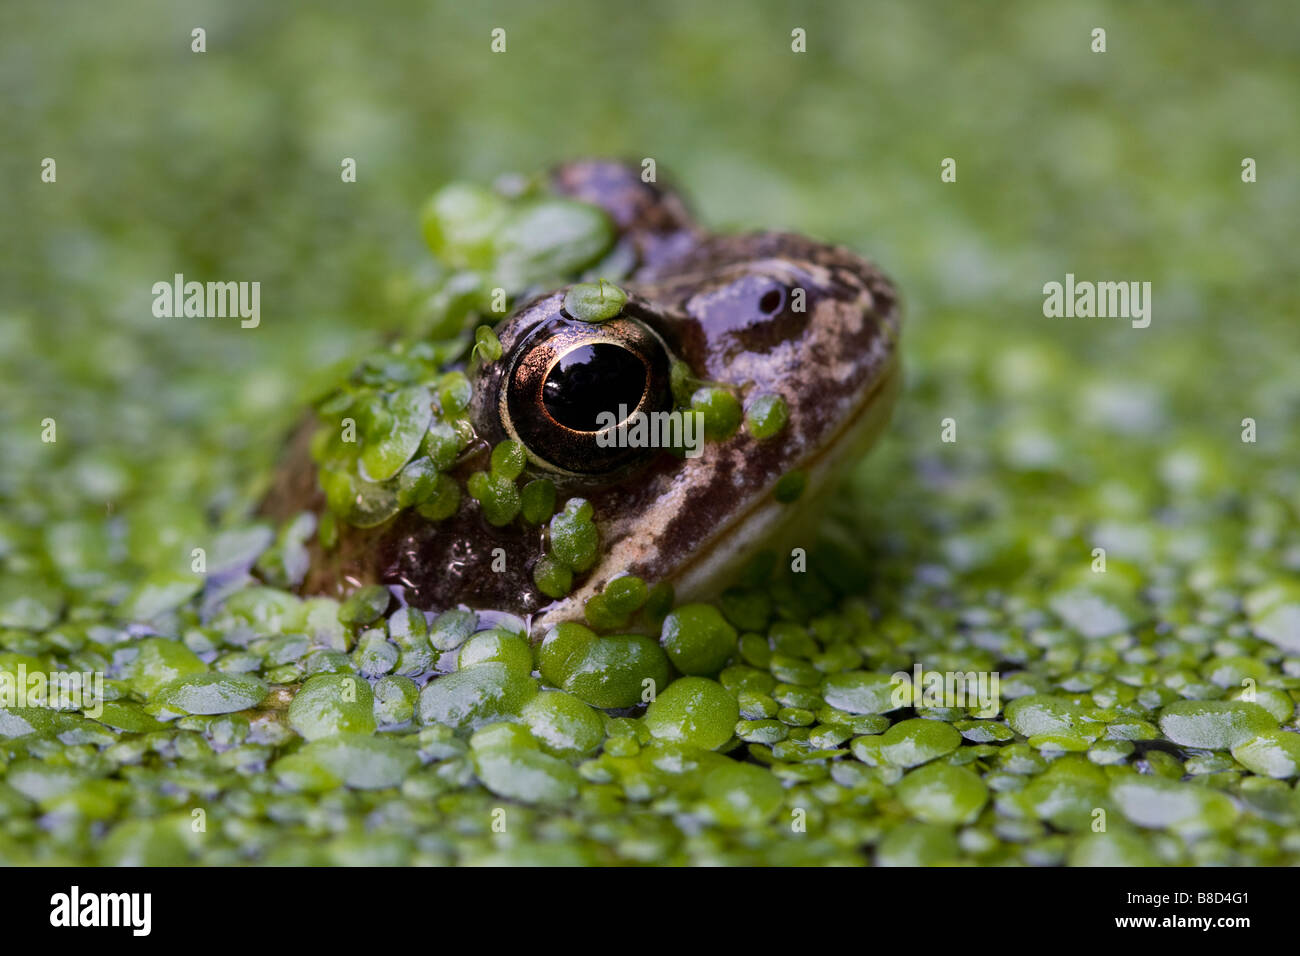 COMMON FROG (Rana temporaria) in garden pond, London, UK - Stock Image